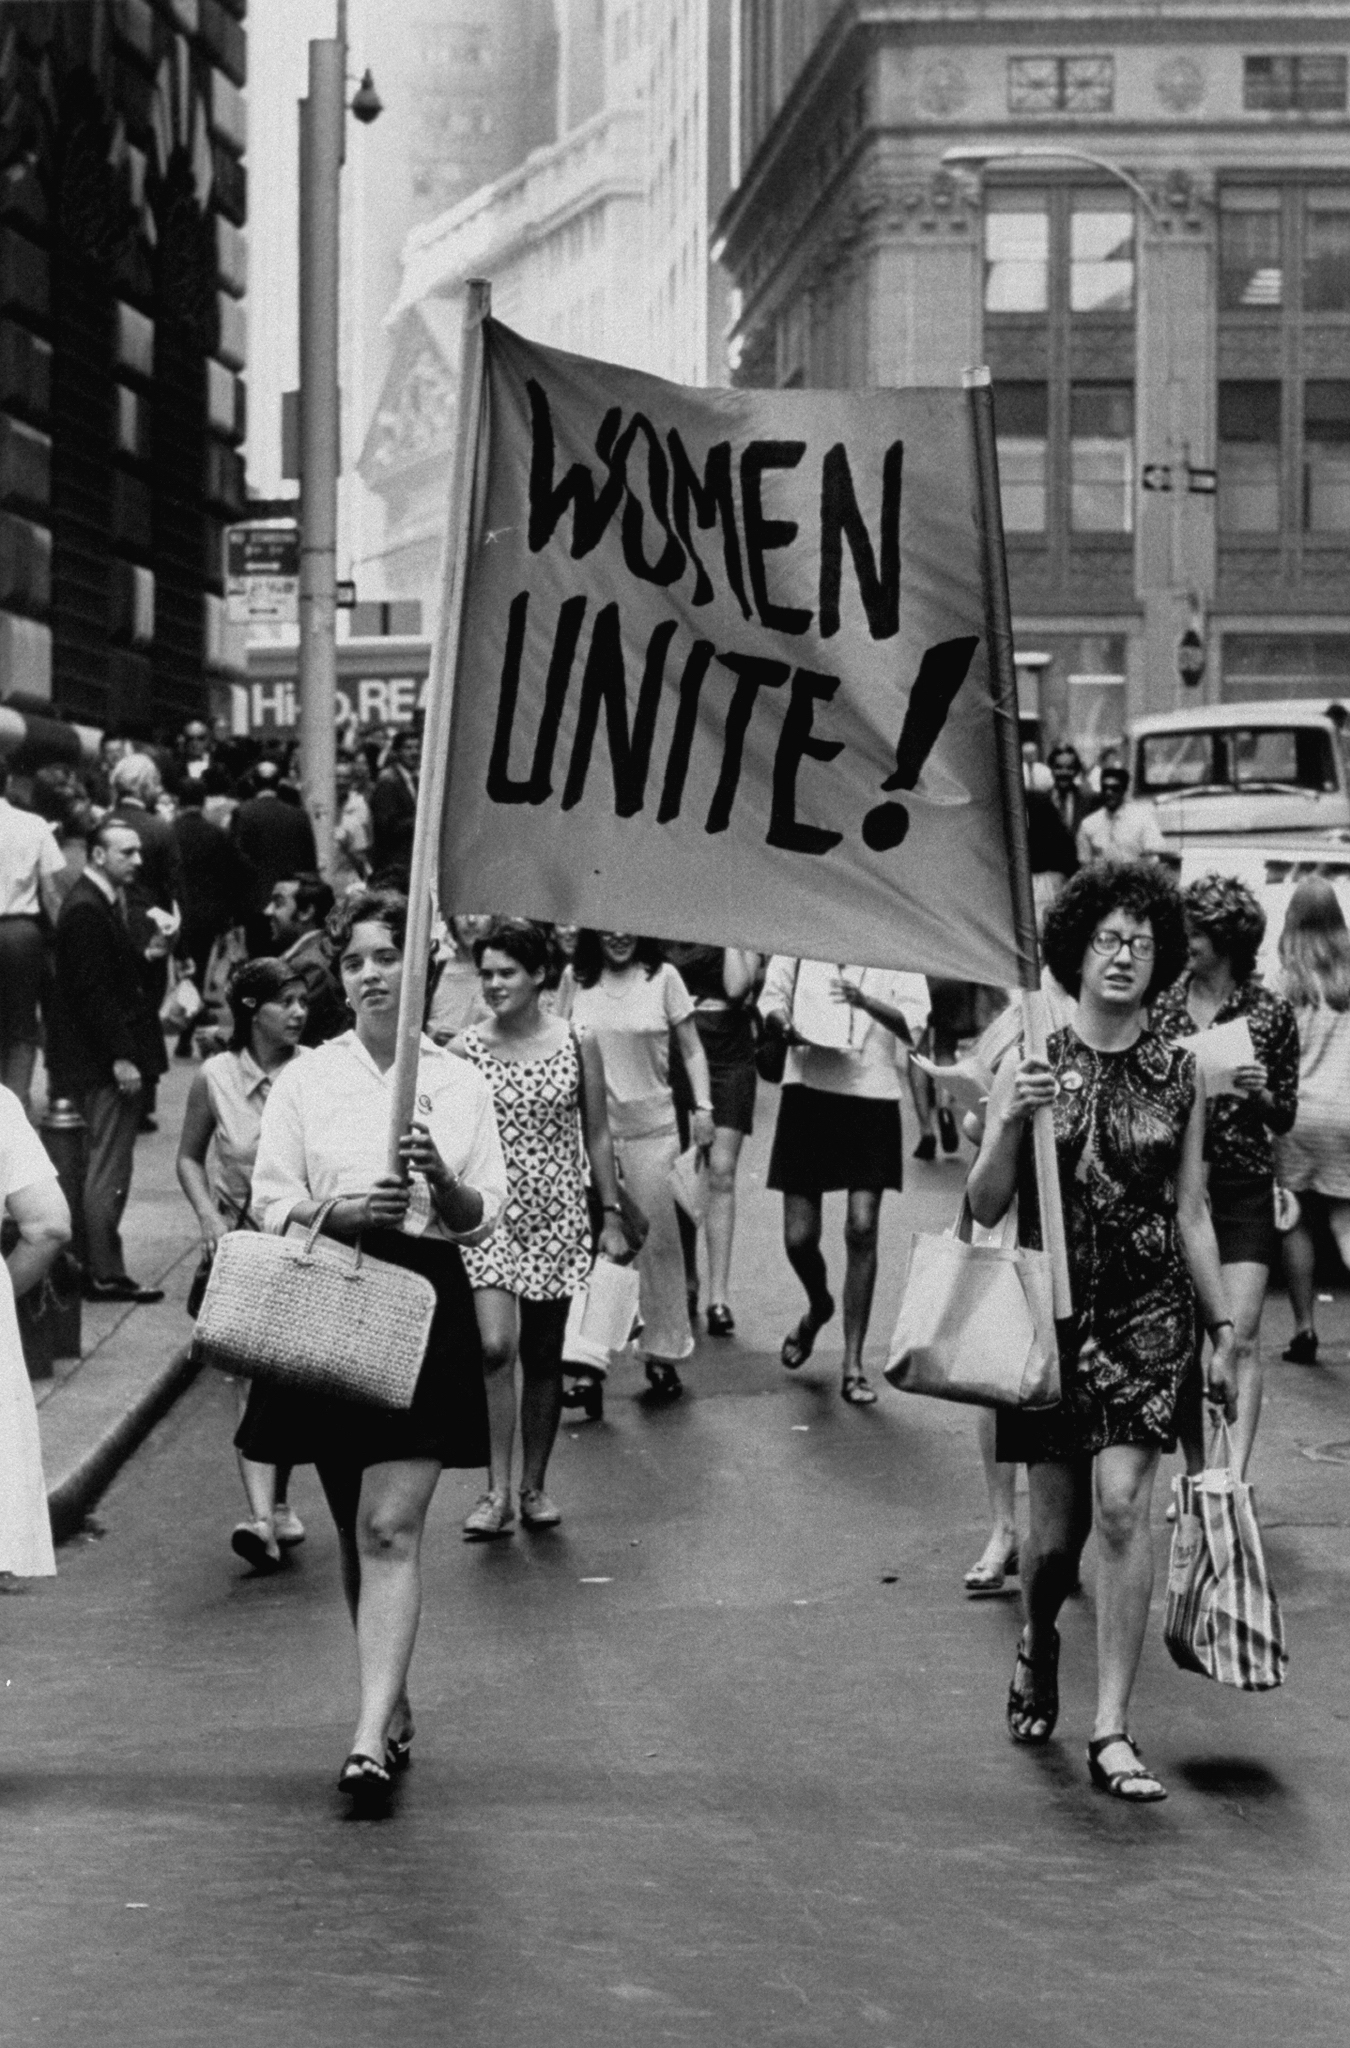 a report on the womens movement in america Timeline of women's suffrage in the united states this article may be in need of reorganization the us house and senate both appoint committees on women's suffrage, which both report favorably native american women played a vital role in this change.